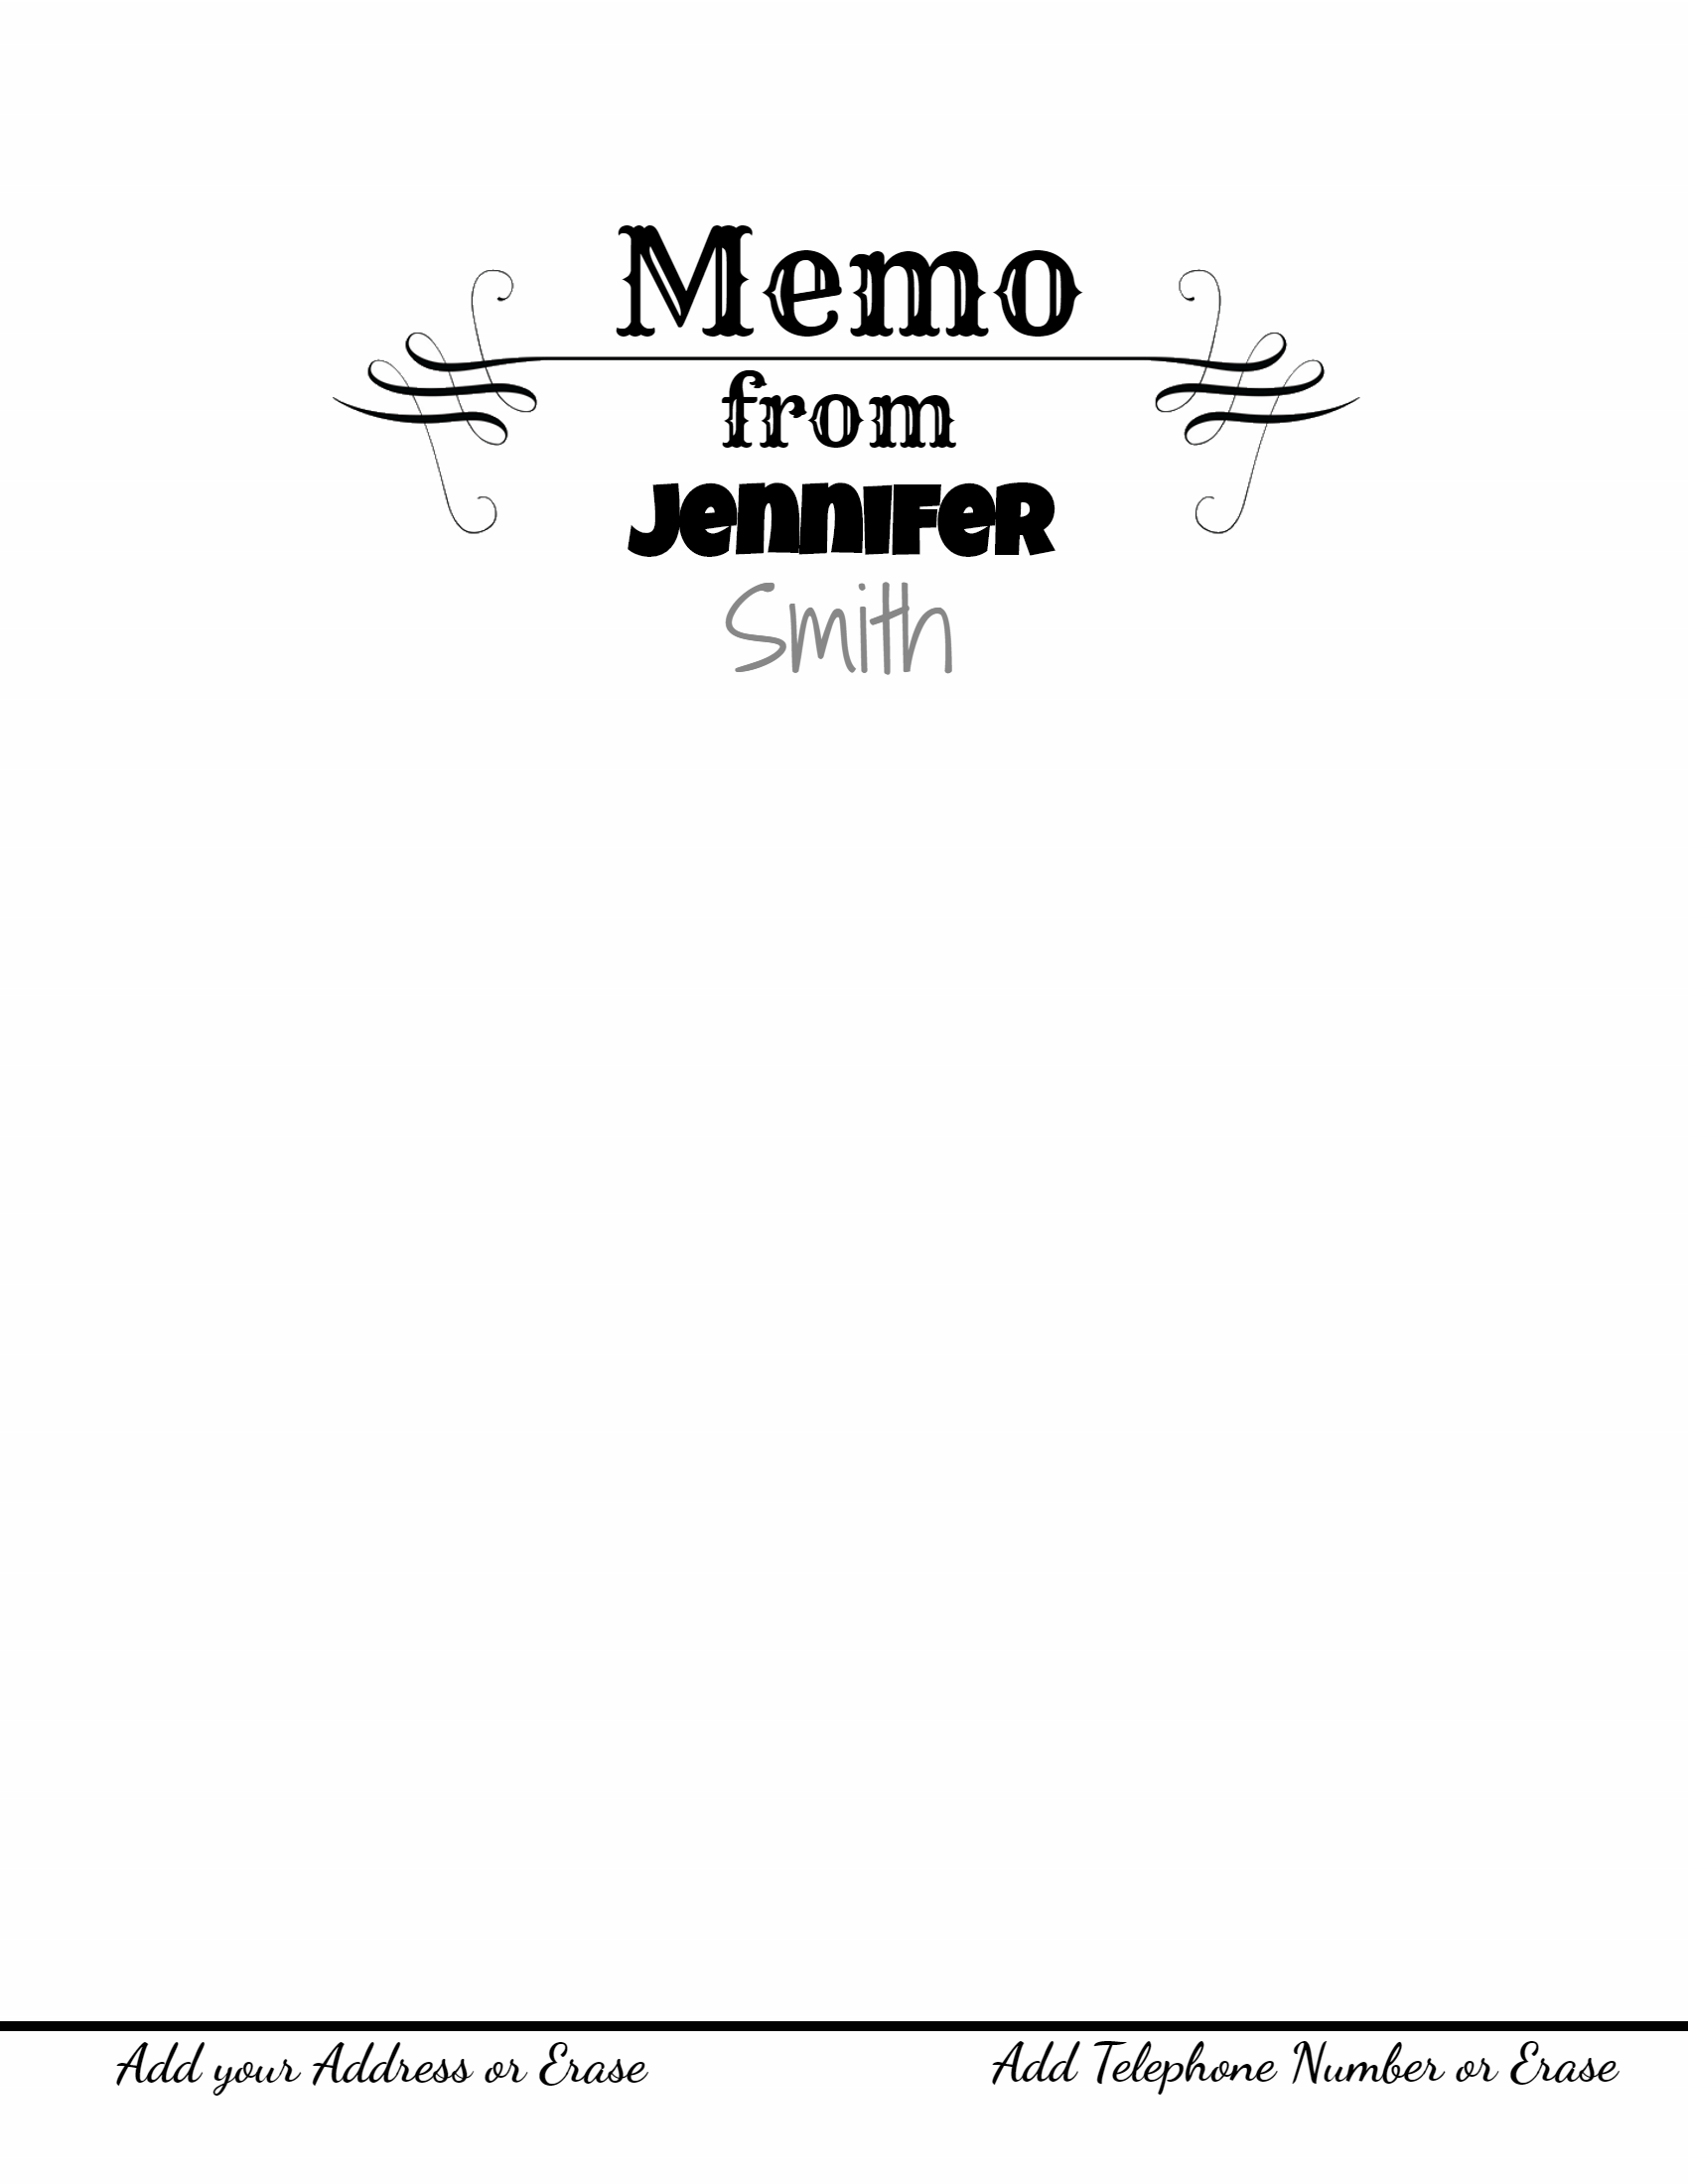 Free Printable Stationery Templates  Memo Templates